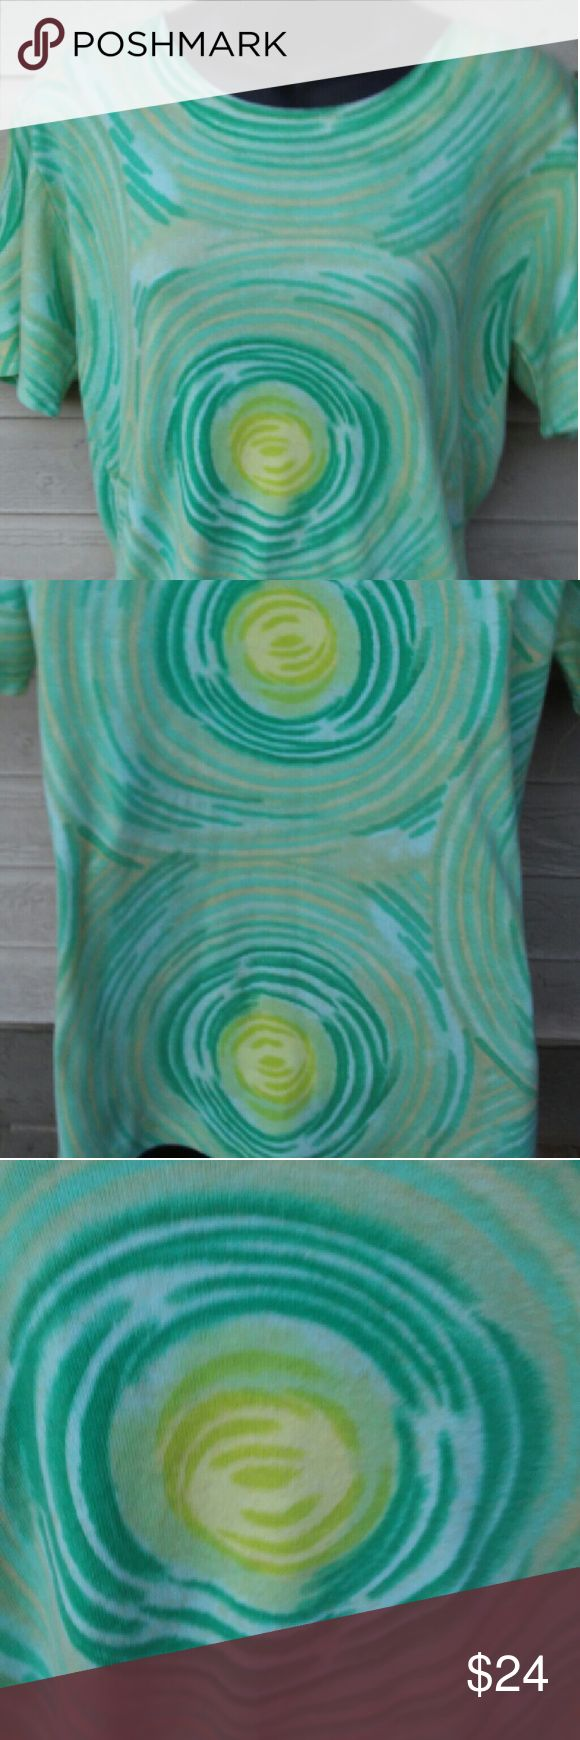 Awesome psychedelic green lime spiral t M Really cool vintage Medium green yellow spirals shirt Tops Tees - Short Sleeve